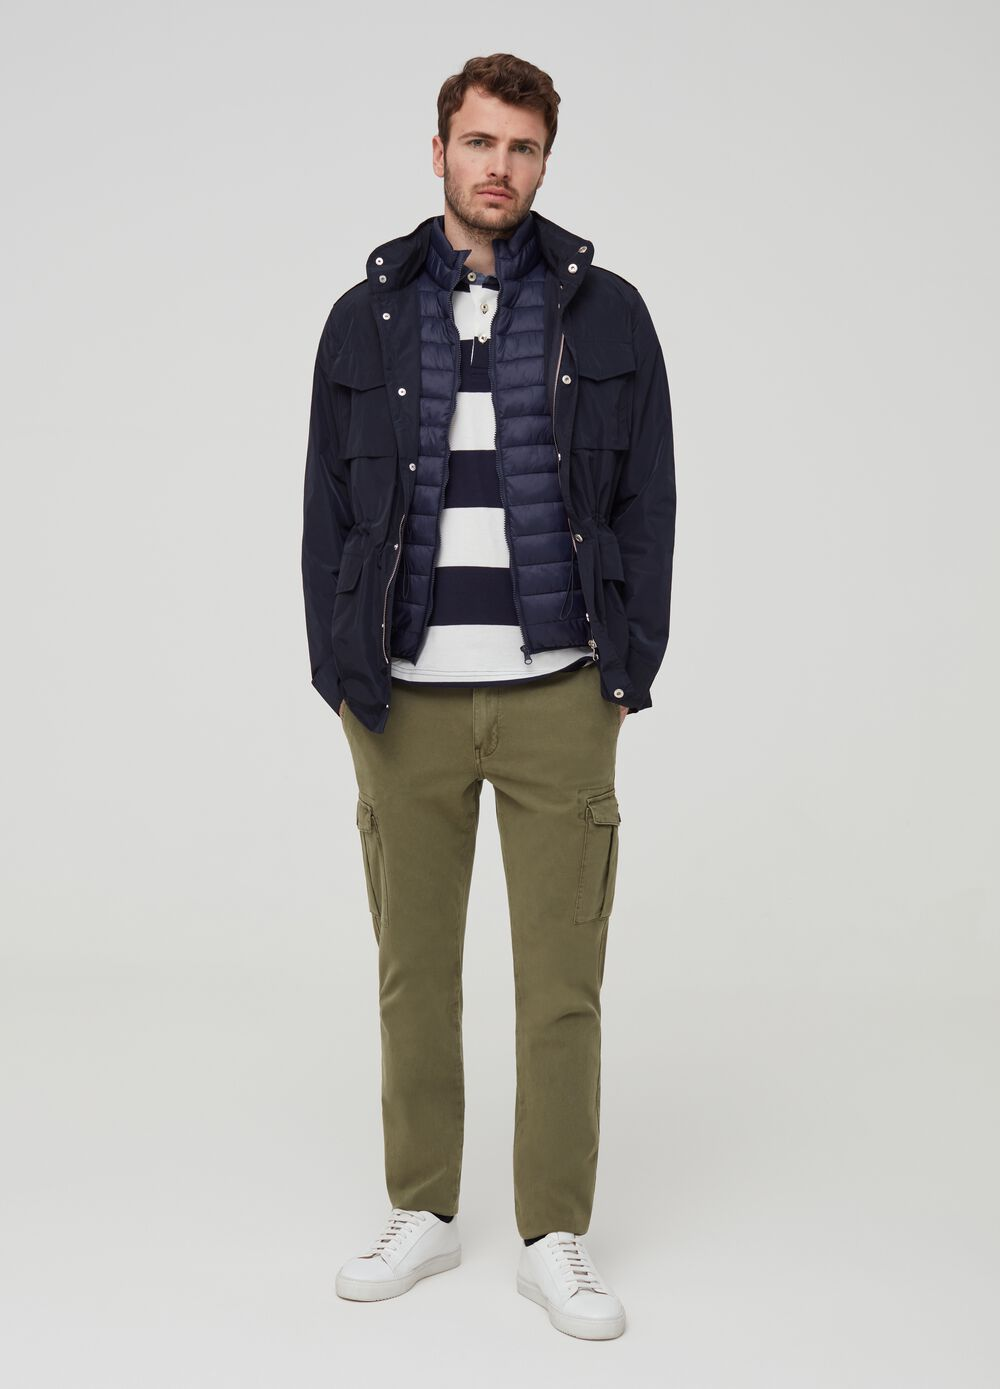 Jacket with high neck and pockets